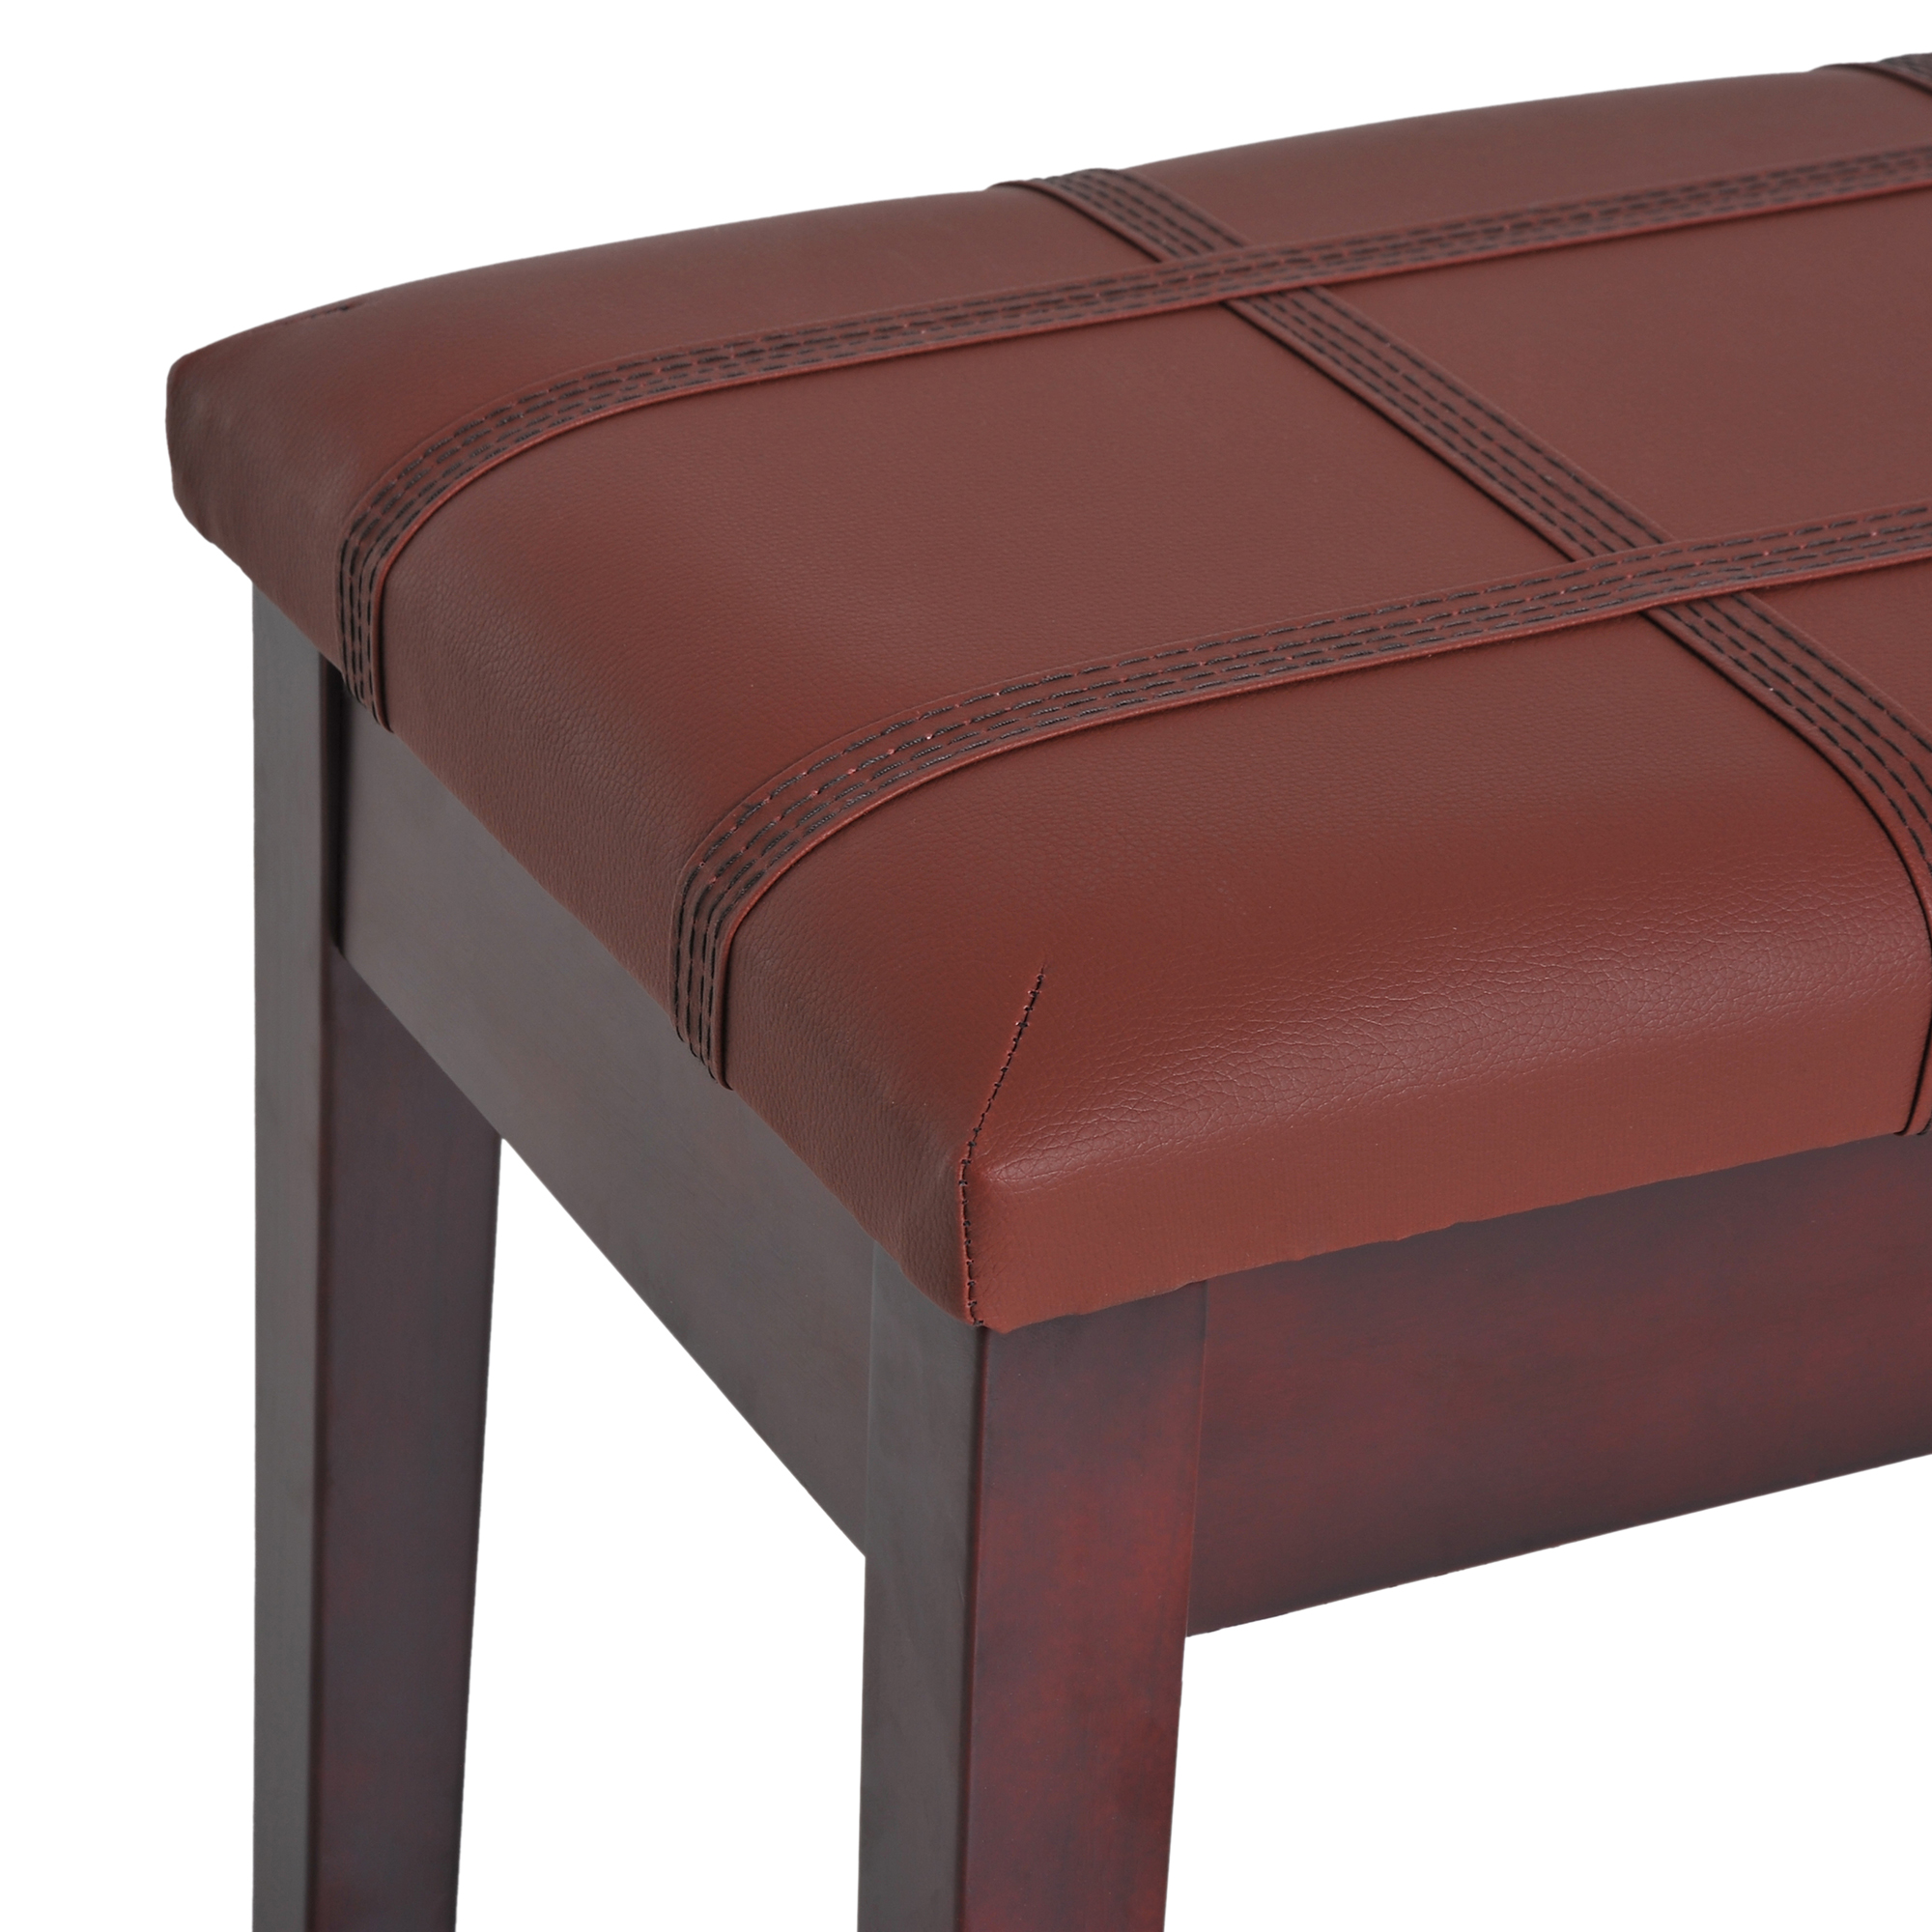 Two-Person-Lift-Top-Piano-Storage-Bench-Faux-Leather-Keyboard-Stool-Birchwood thumbnail 16